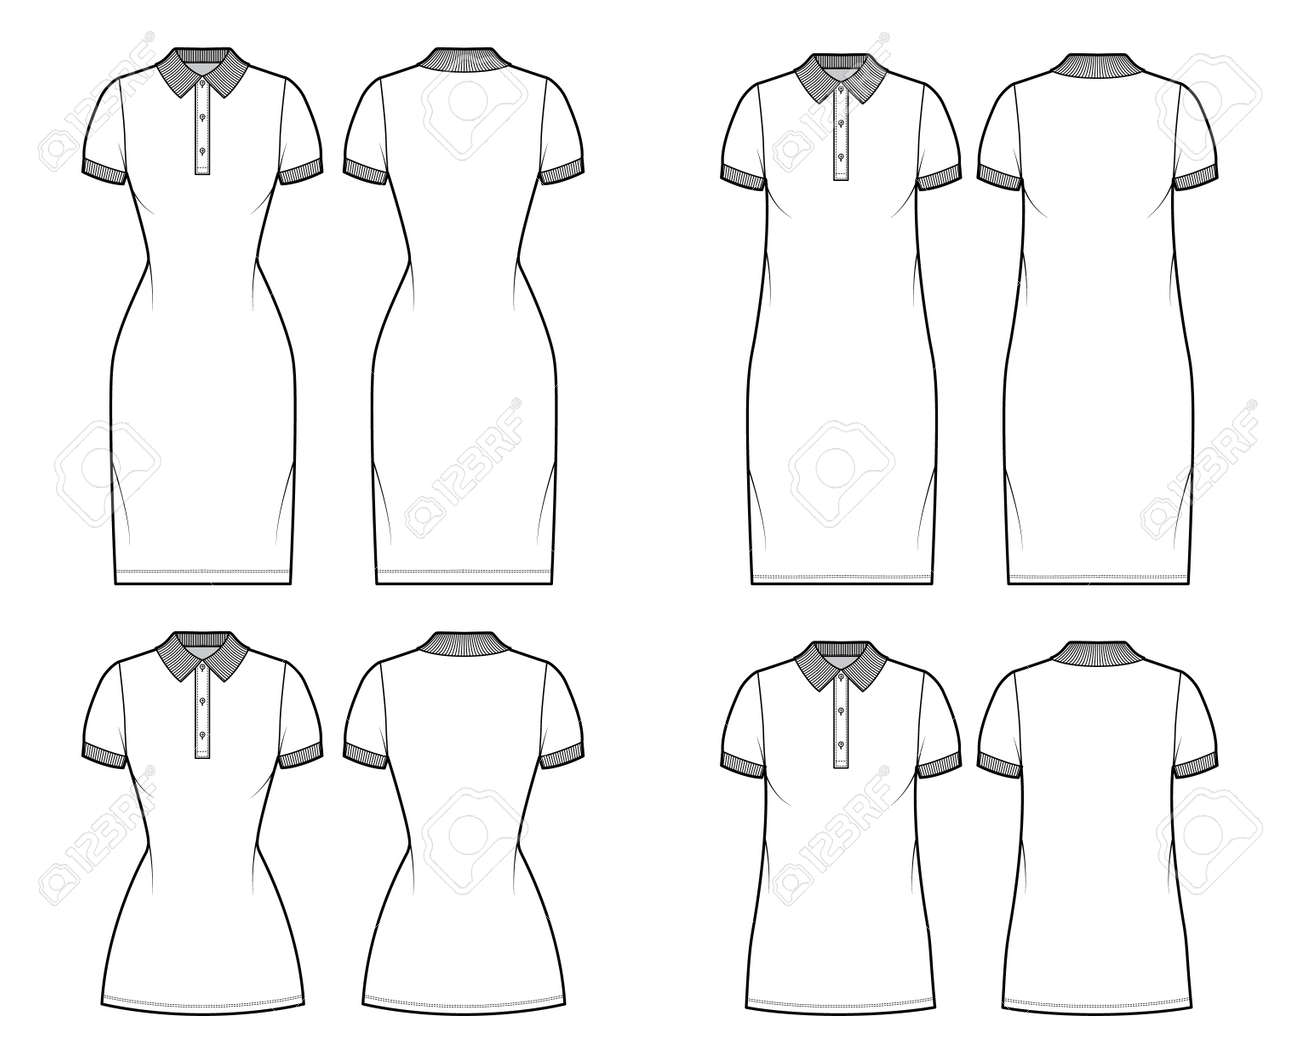 Set of Dresses polo fashion illustration with short sleeves, oversized fitted body, knee mini length pencil skirt, henley neckline. Flat apparel front, back, white color. Women, men unisex CAD mockup - 169770212